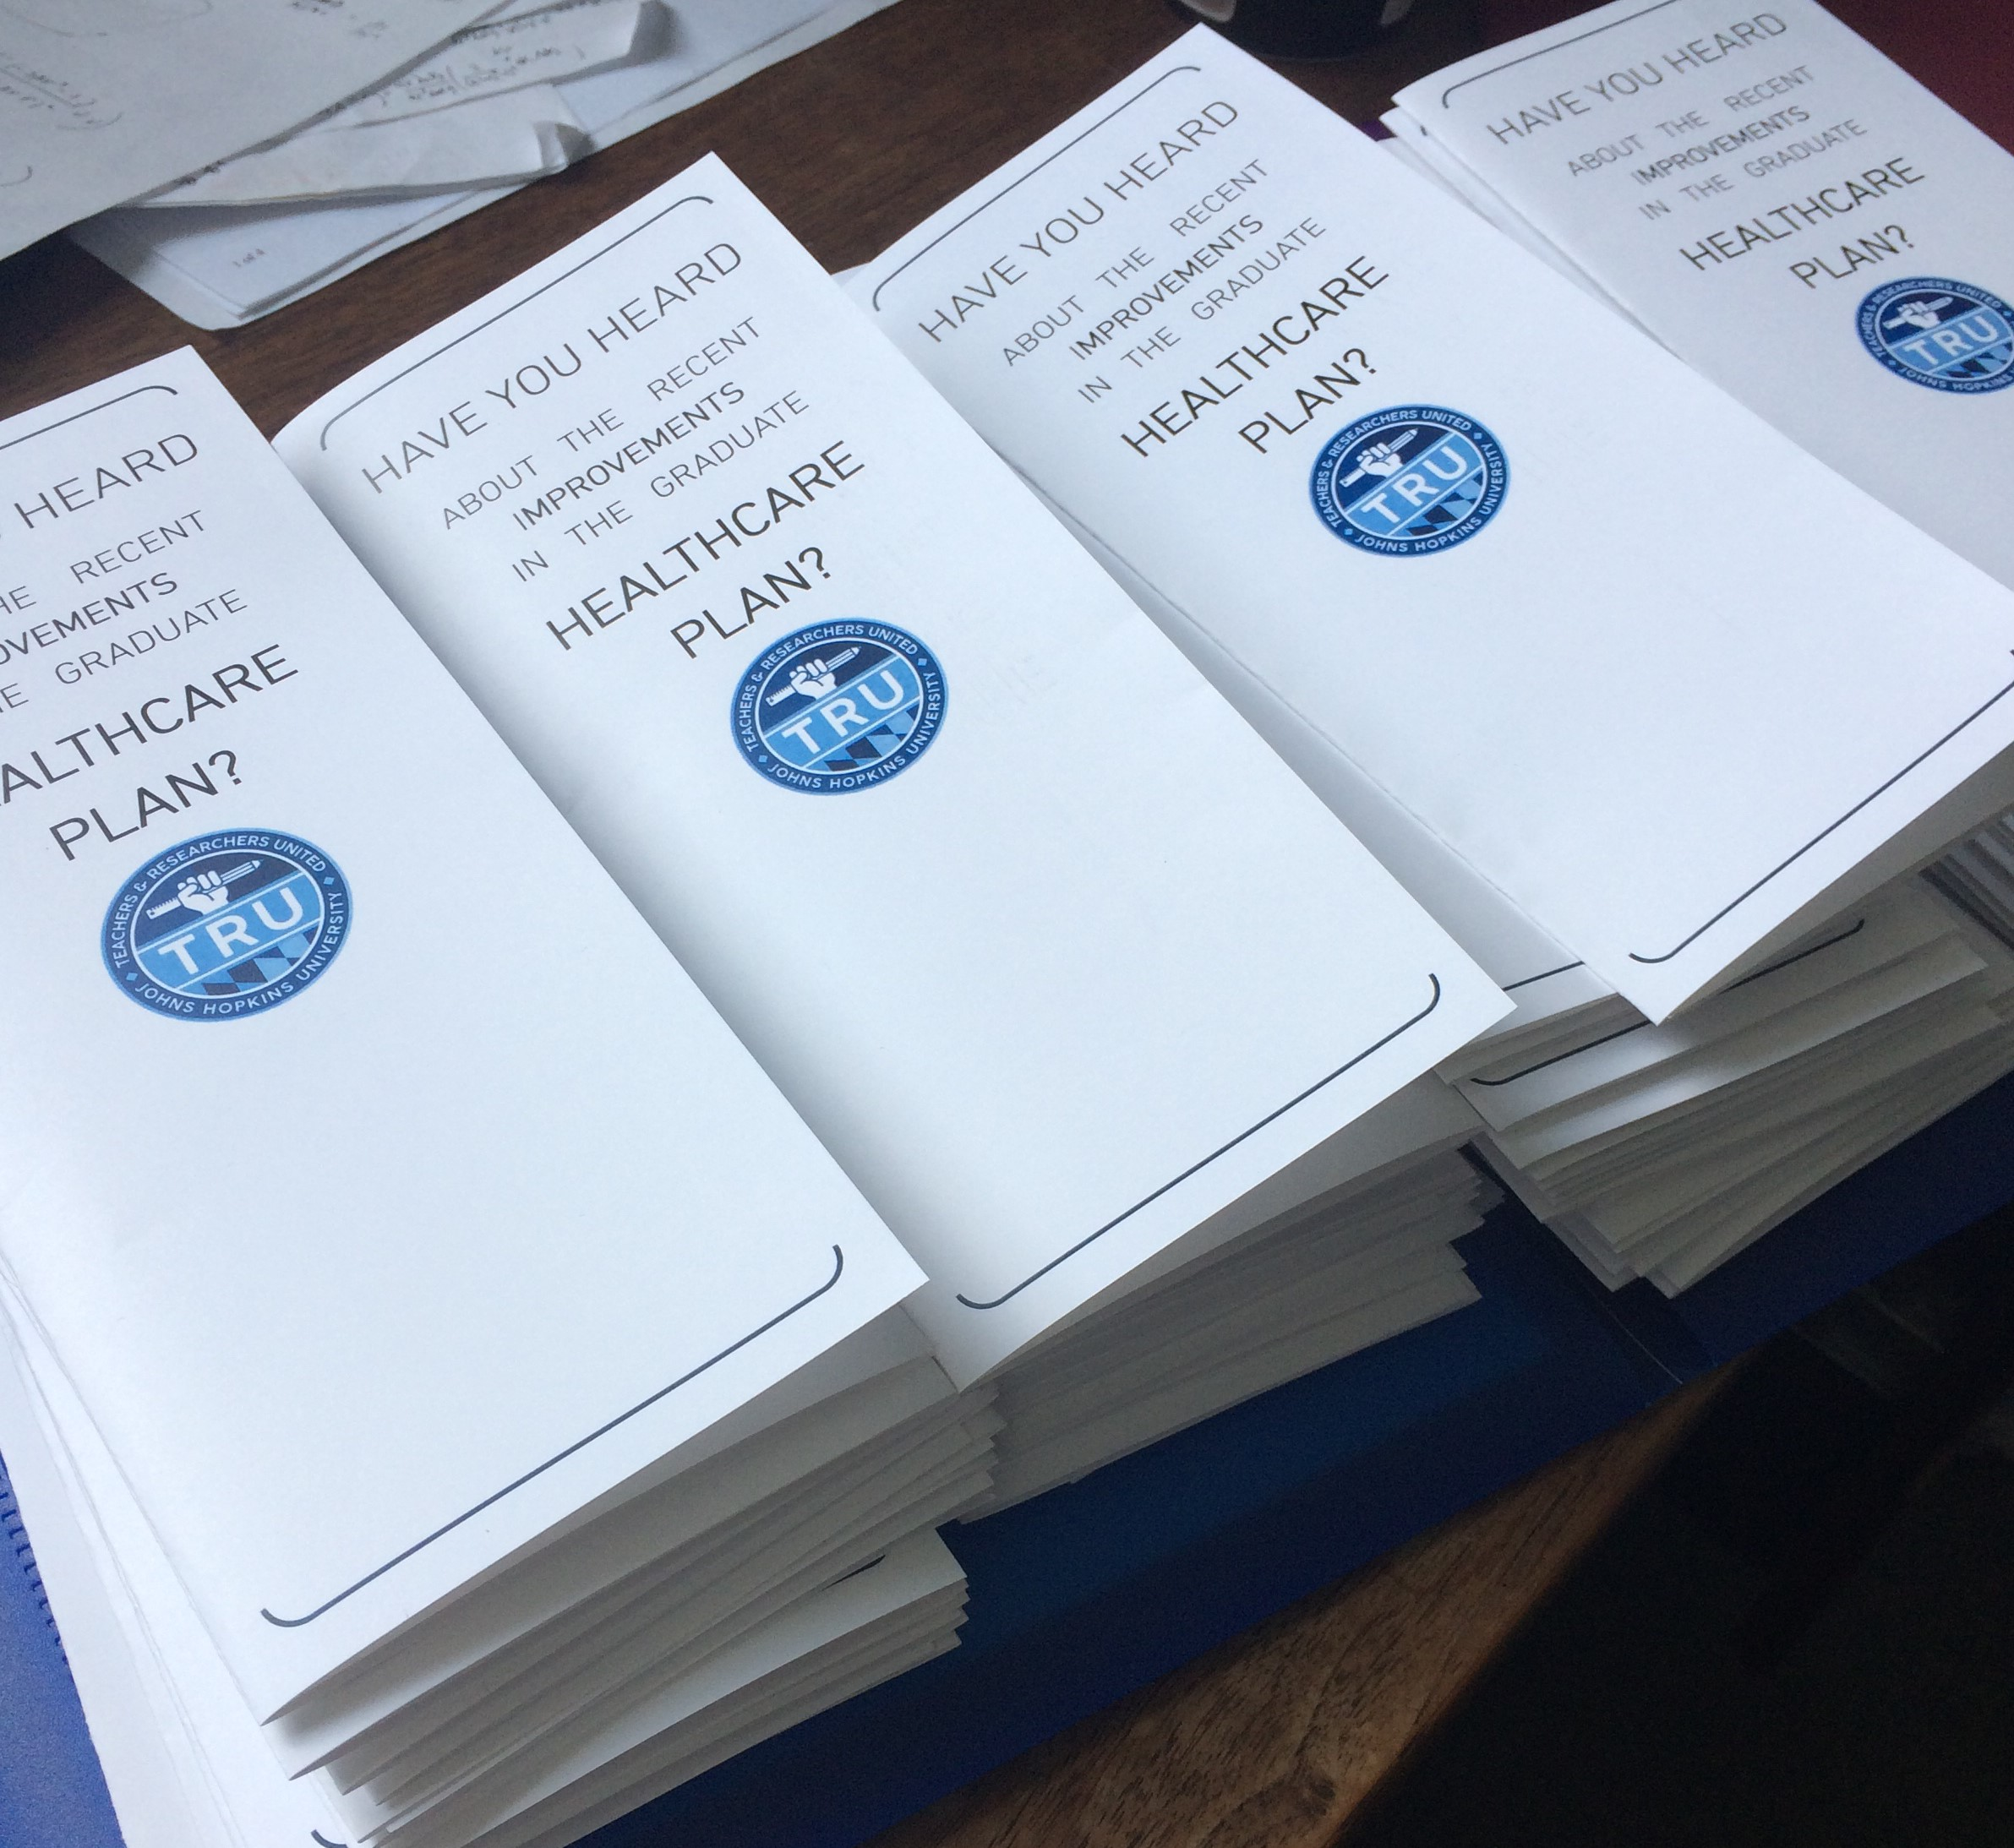 piles of pamphlets about changes to the CHP health care plan